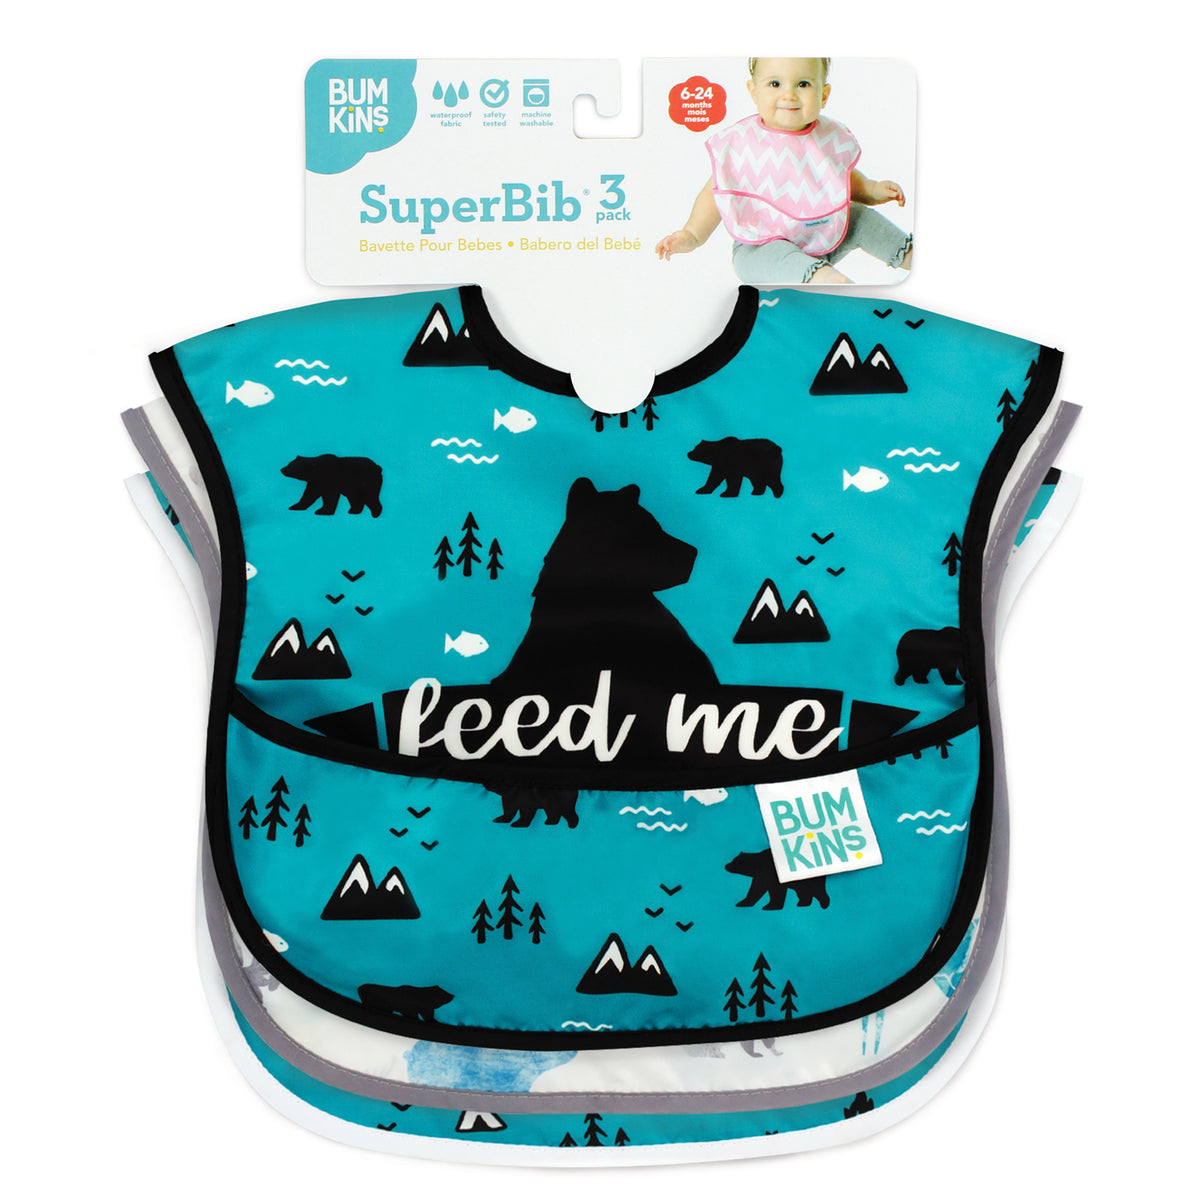 Super Bib | Outdoor & Nature - 3pk